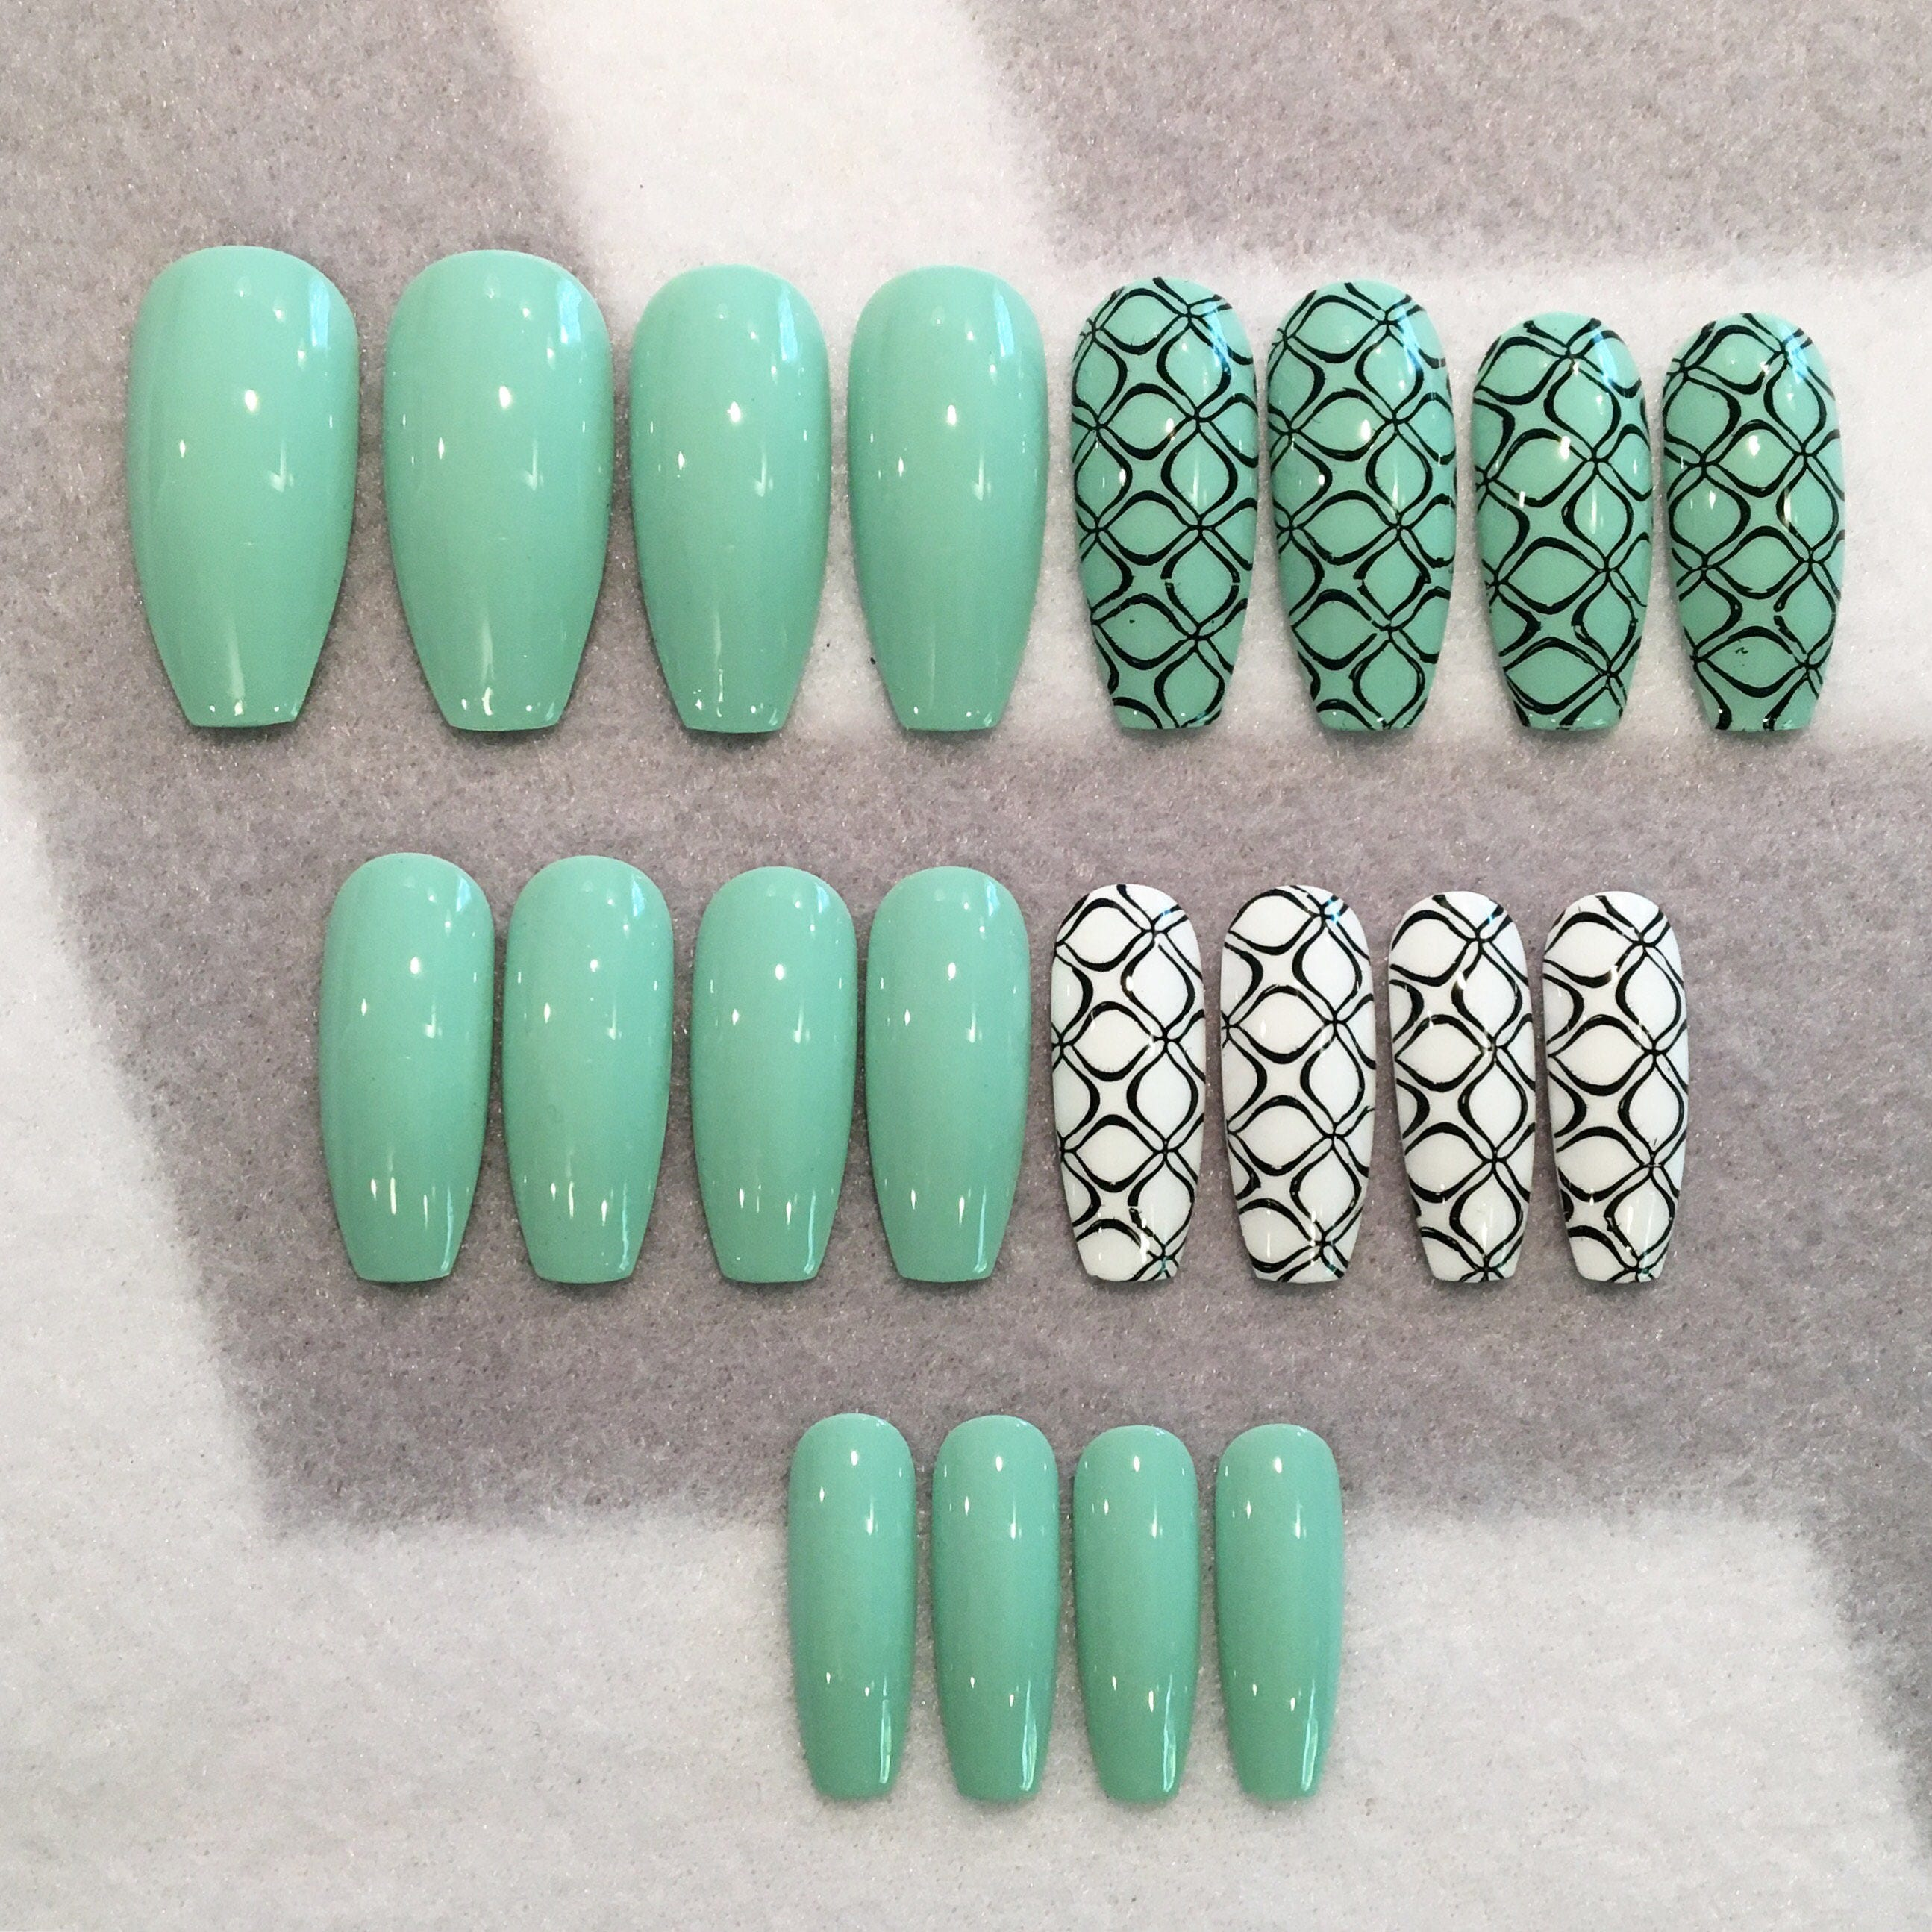 Seafoam Green And Black Fake Nails * Faux Nails * Glue On Nails ...